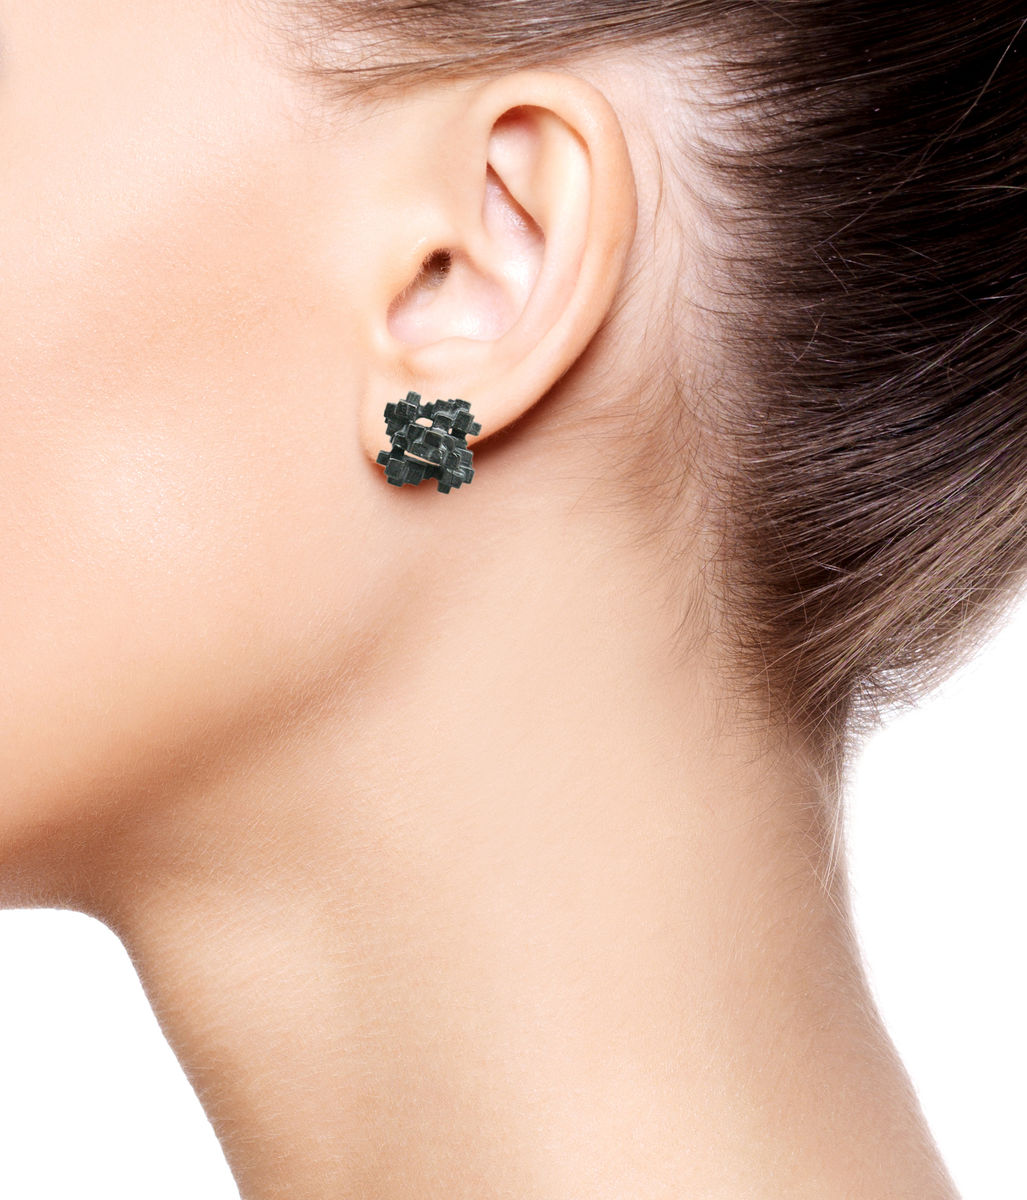 Tetris Square Earrings Black - product images  of